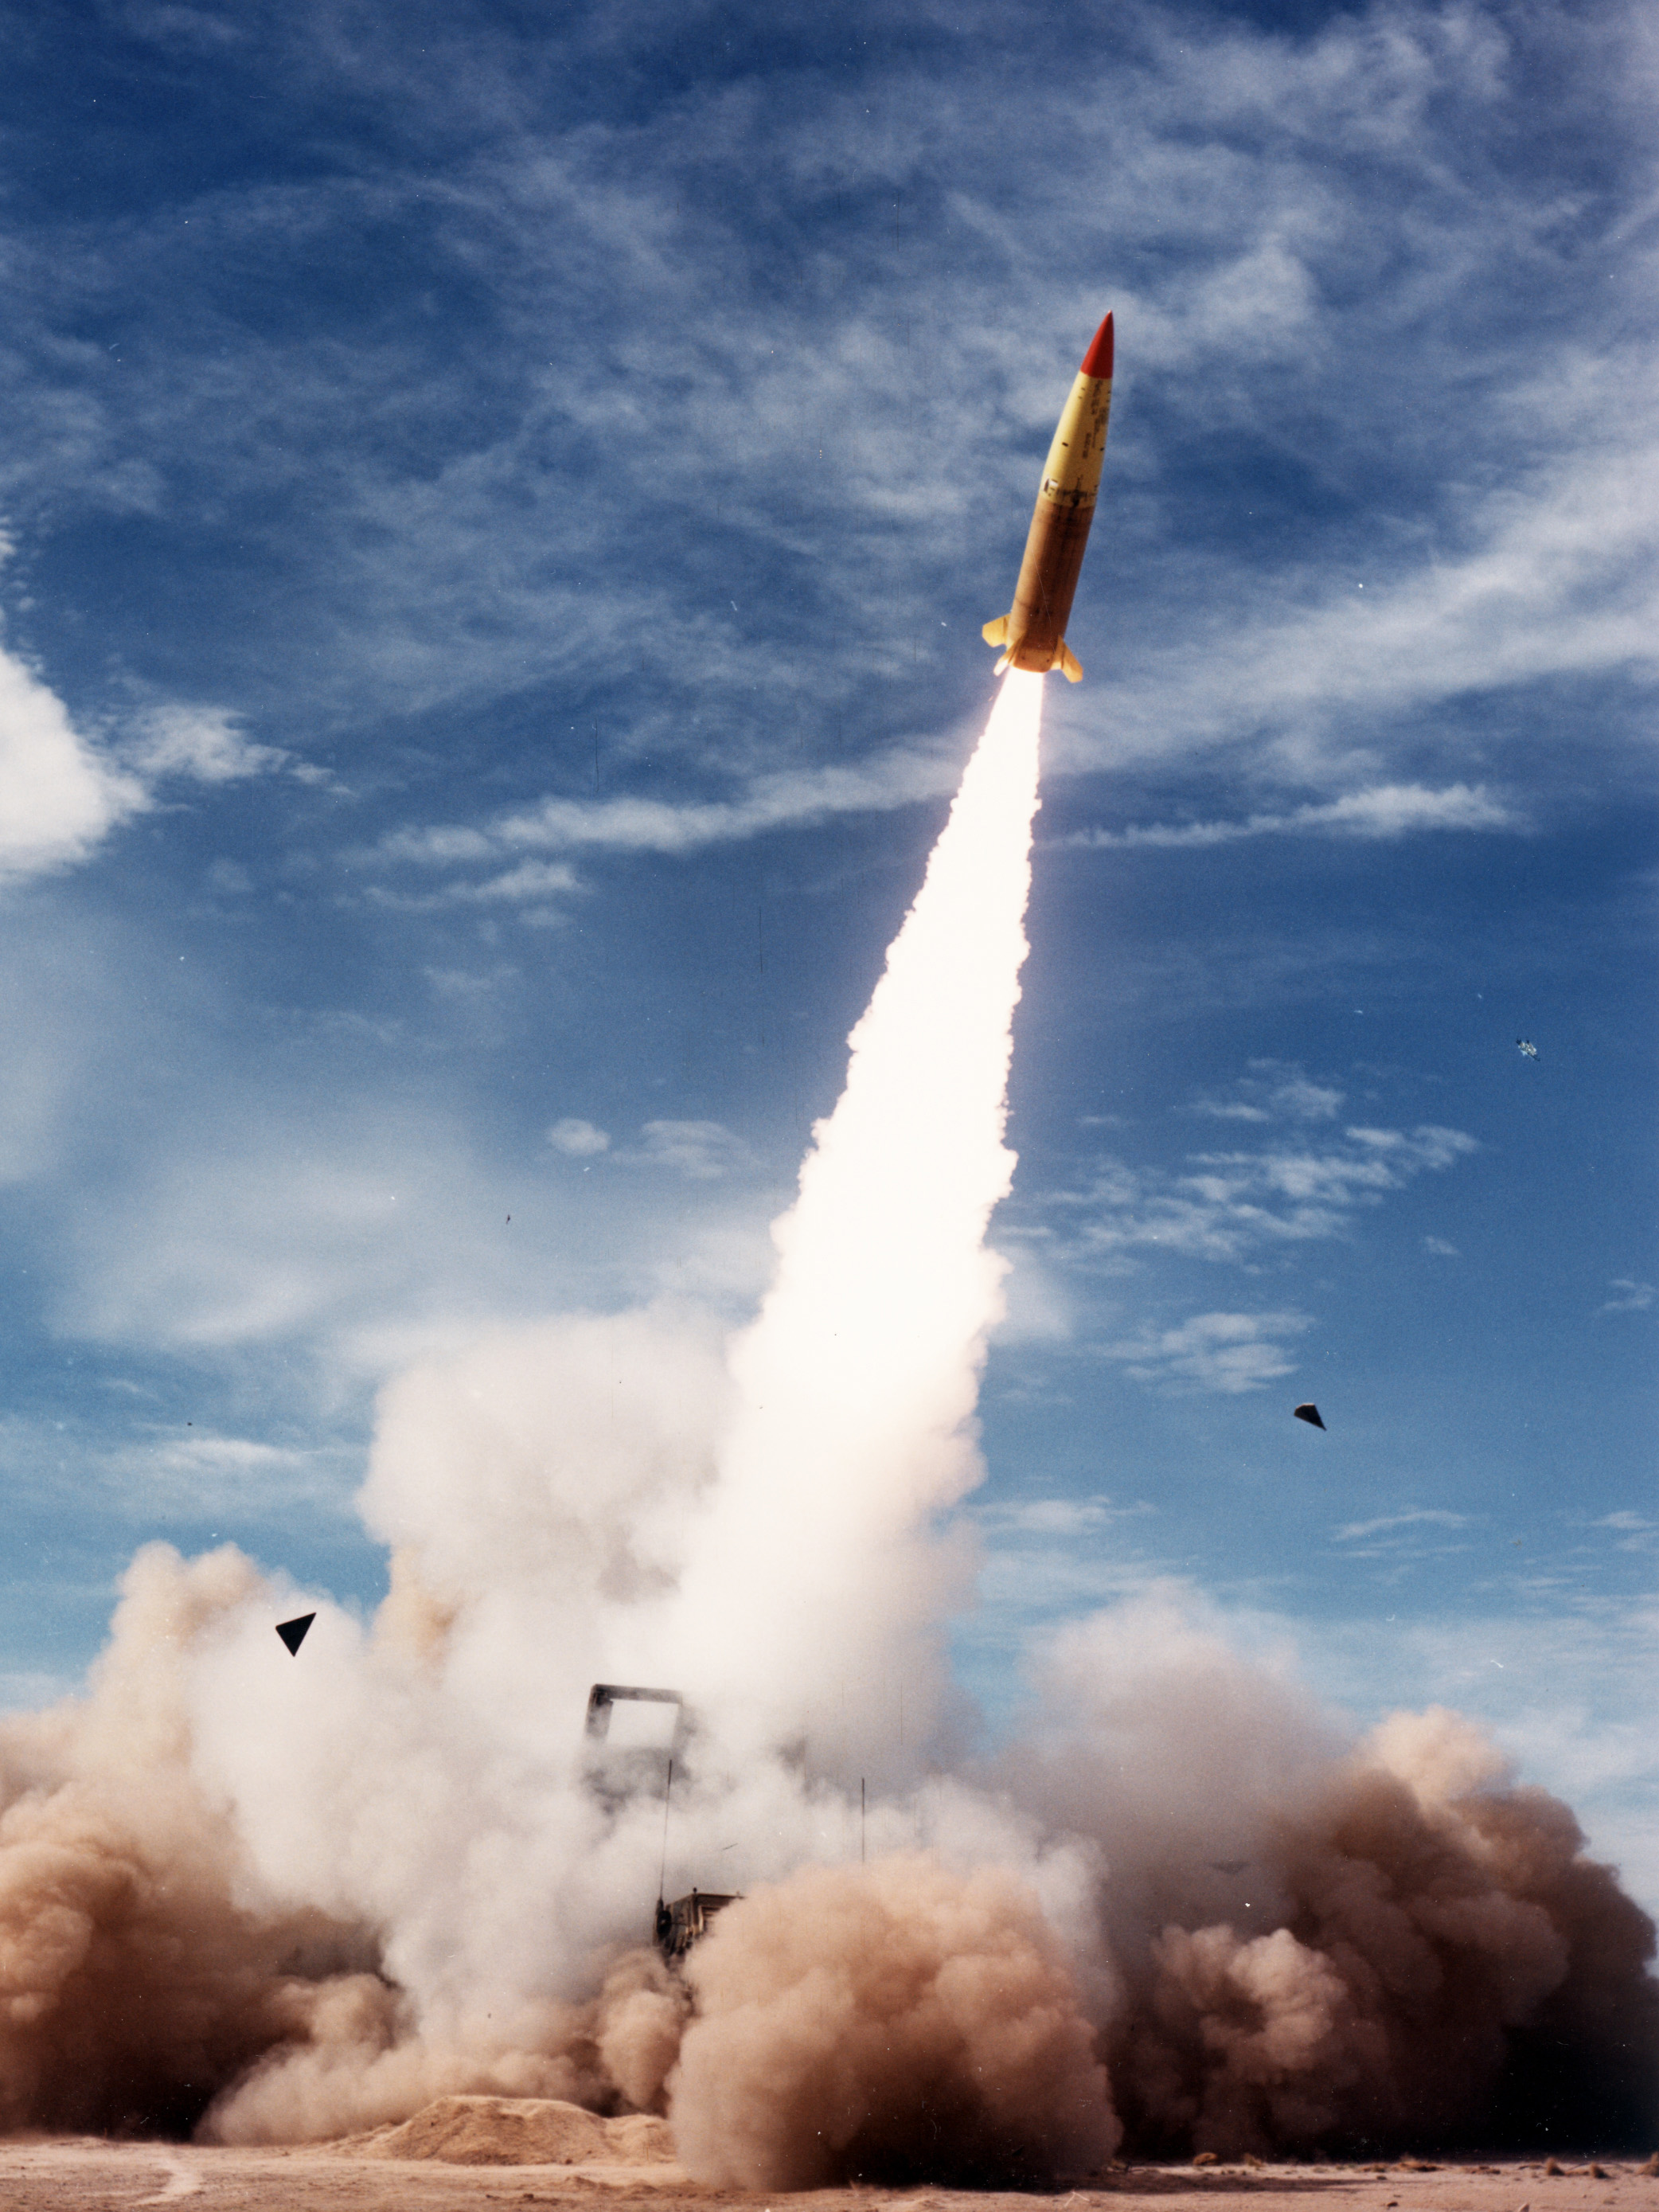 One of the last of 15 ATACMS tested during IOT&E heads skyward at White Sands Missile Range on May 24, 1990. (Photo by George Baird)